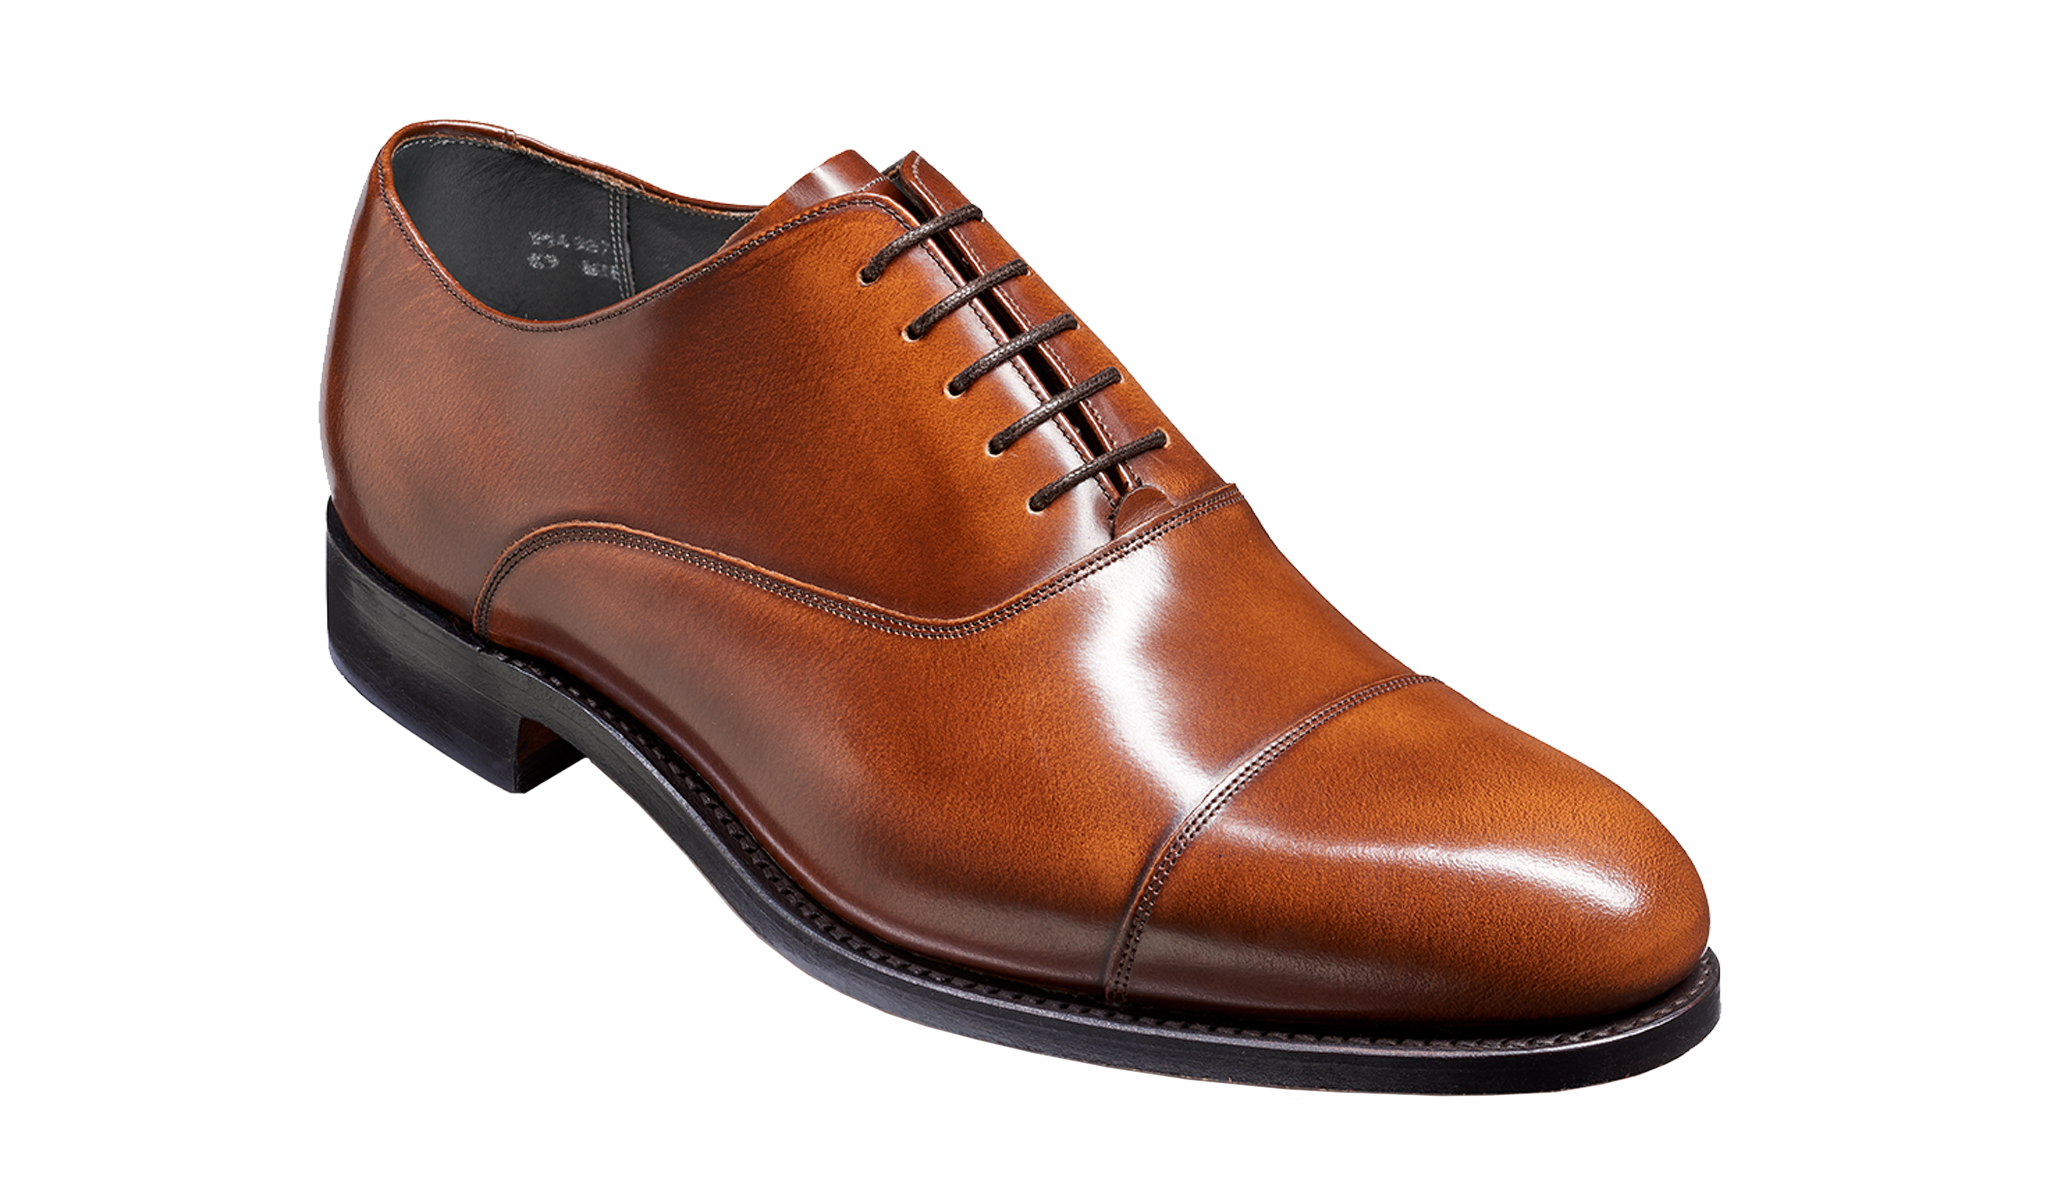 Winsford - Brown oxford handmade shoe from Barker.